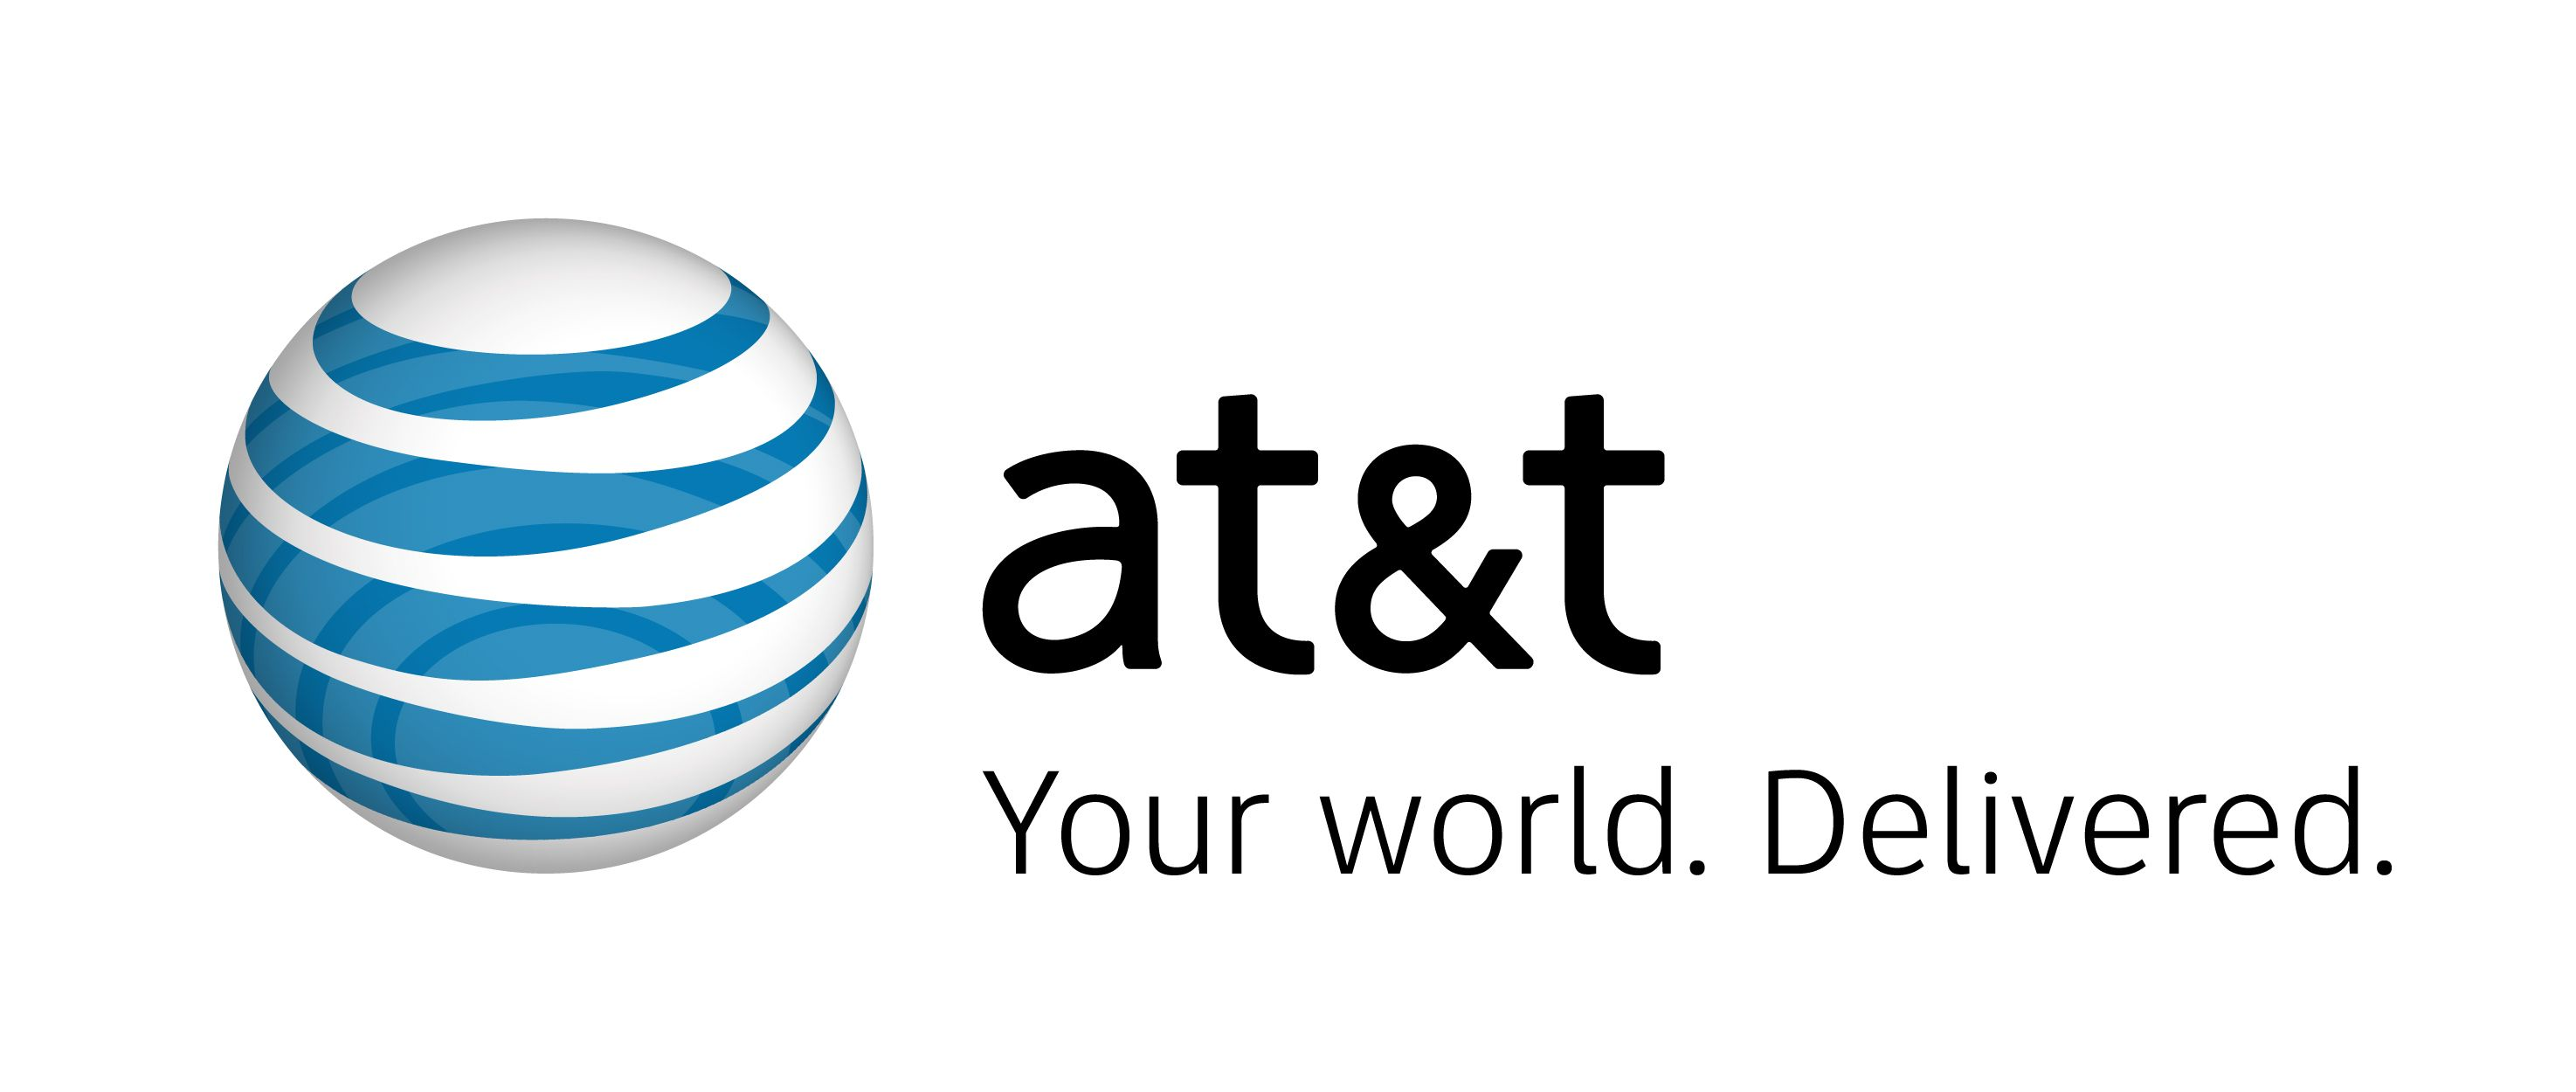 ATT-Your-World.jpg